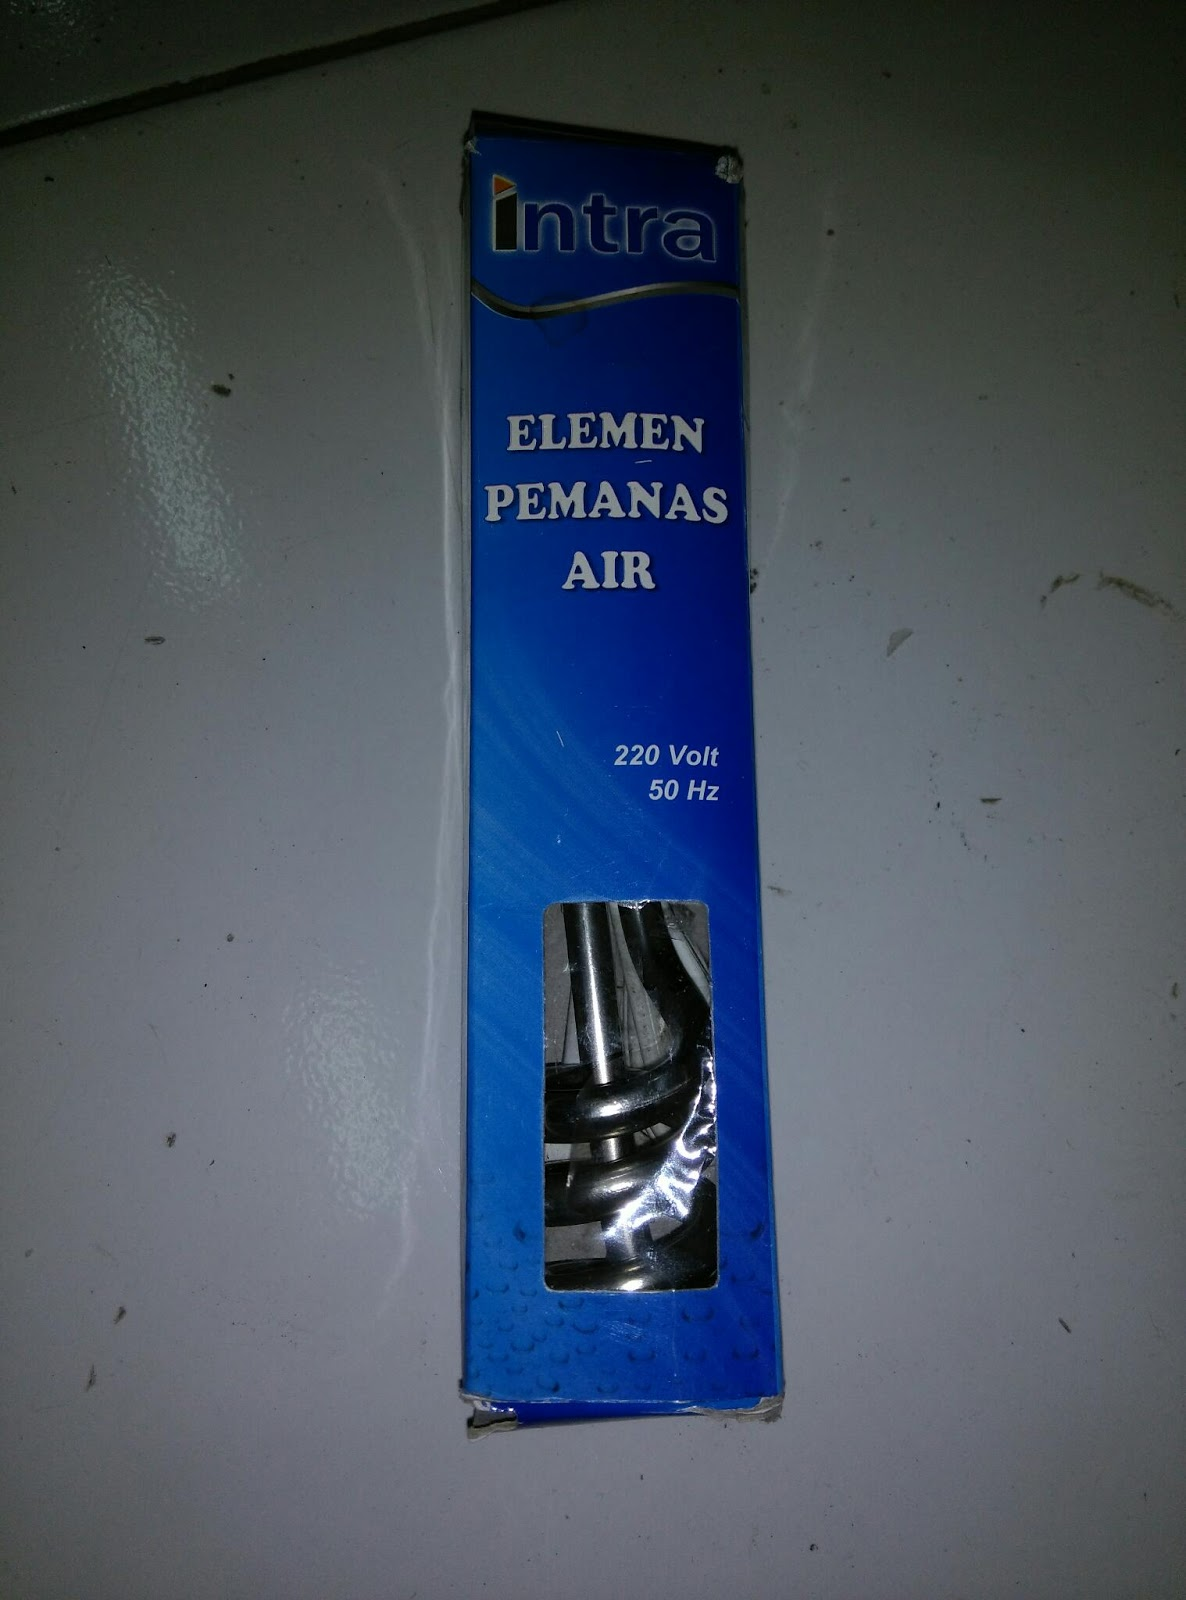 Elemen Pemanas Air Intra 220 Volt 50 Hz